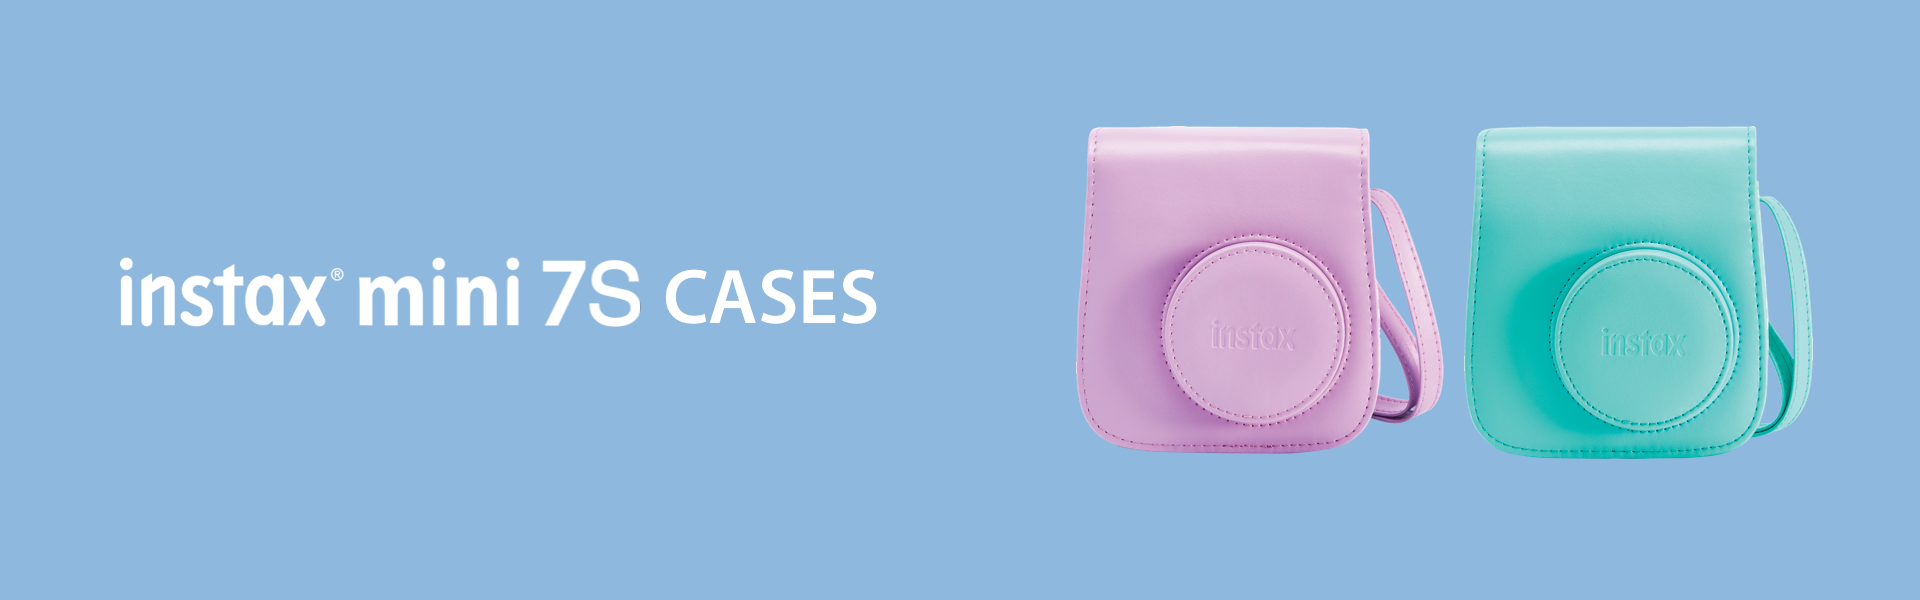 Blue Hero image with pink and green Mini 7S camera Cases